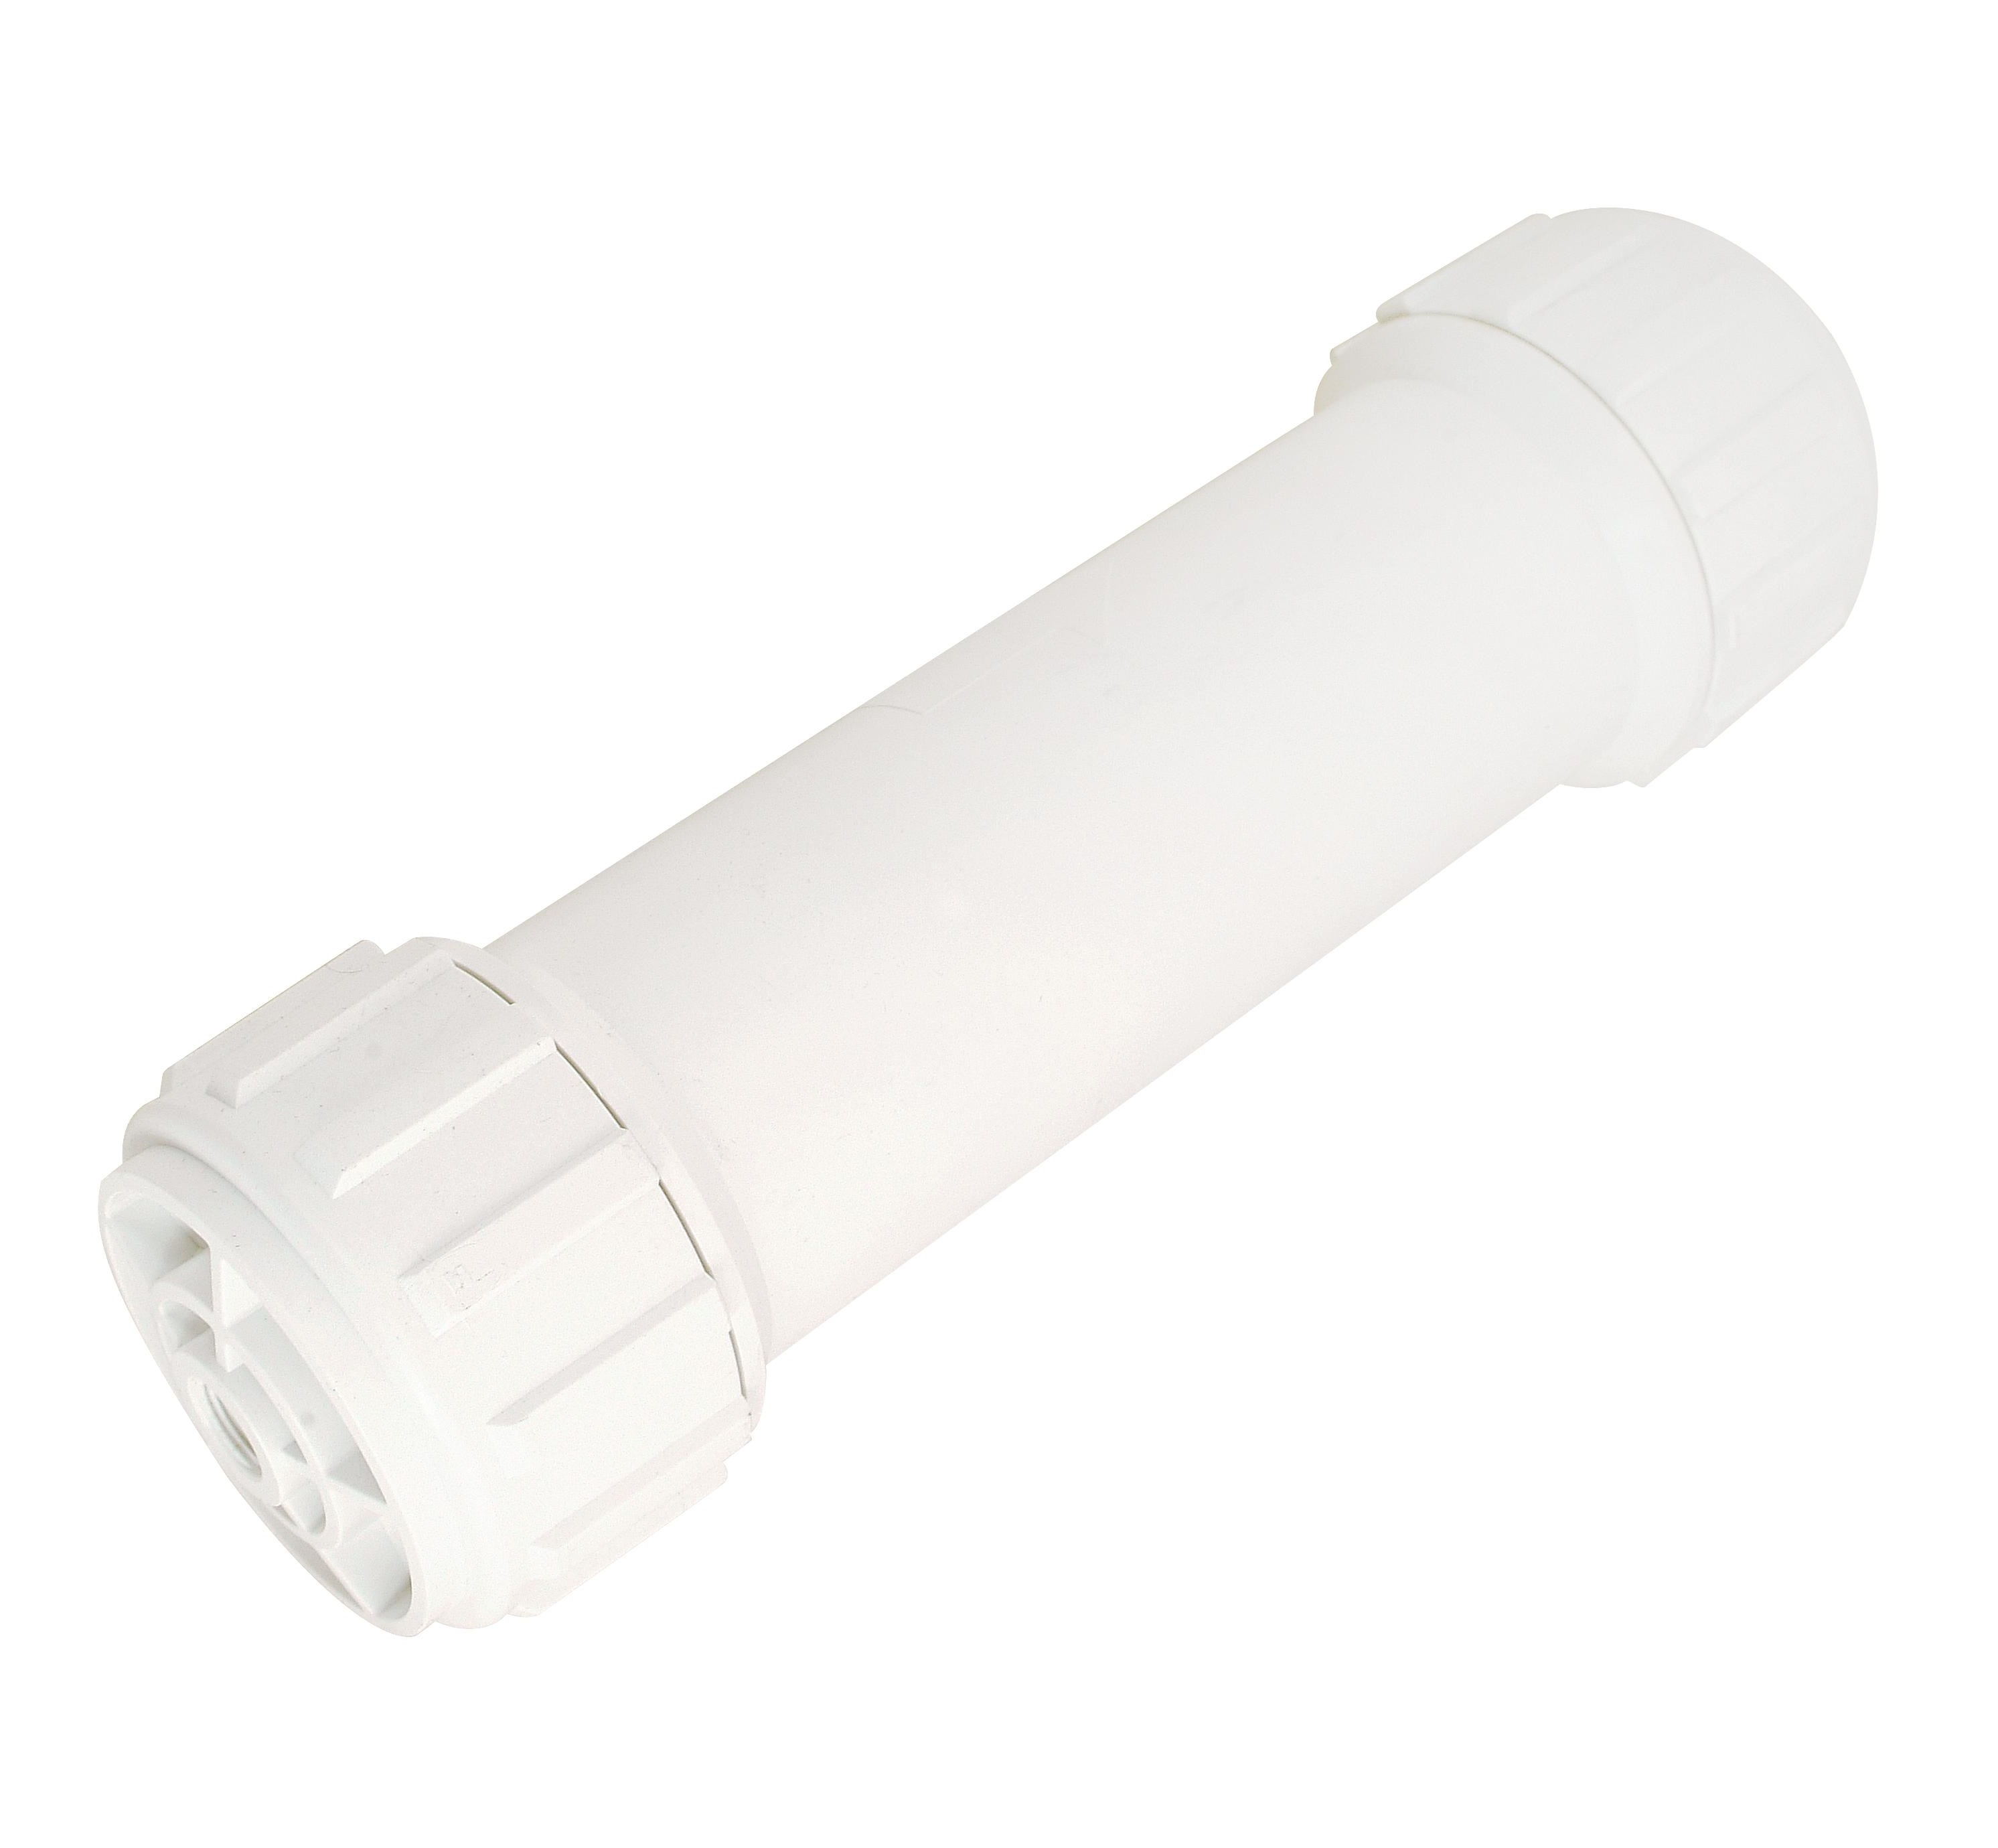 2412 Membrane Housing Connector